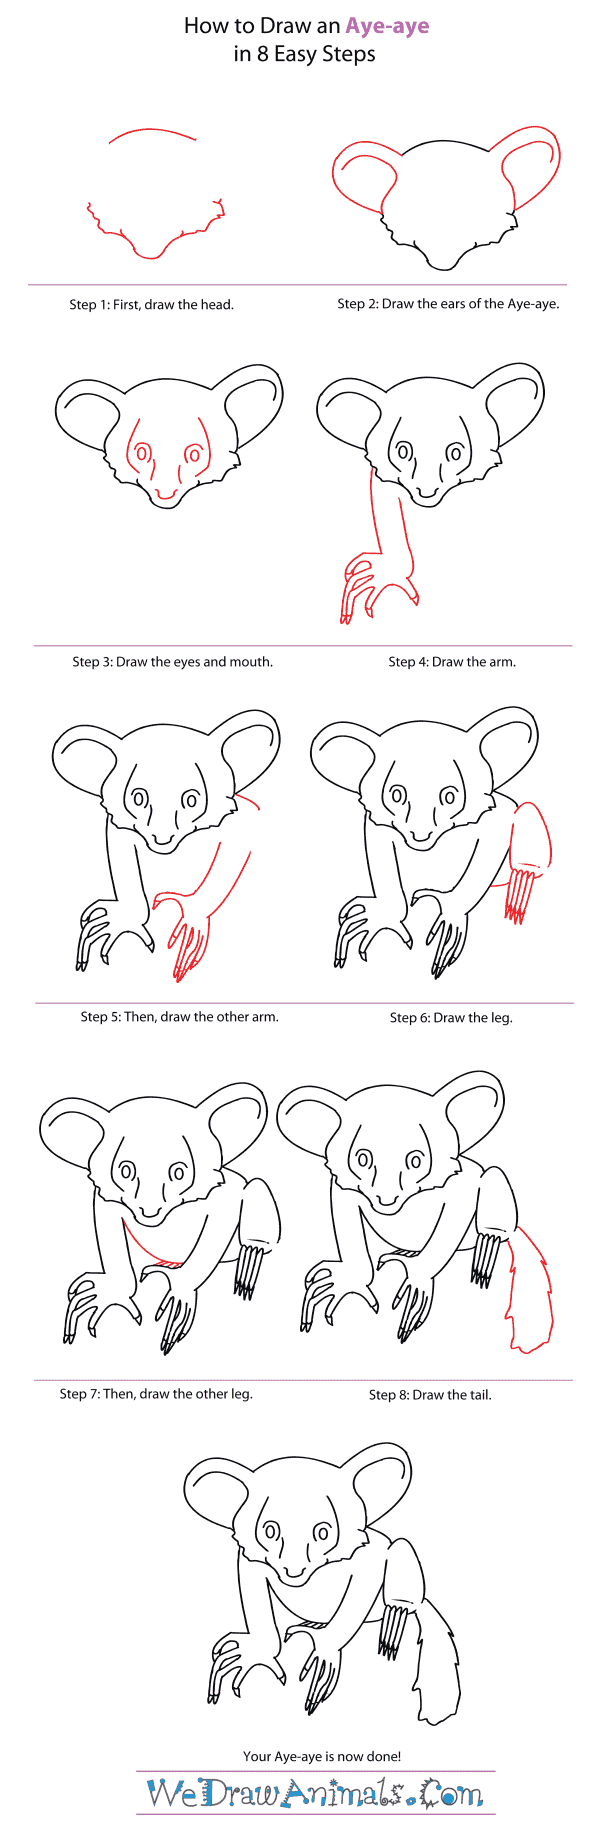 How to Draw an Aye-Aye - Step-By-Step Tutorial